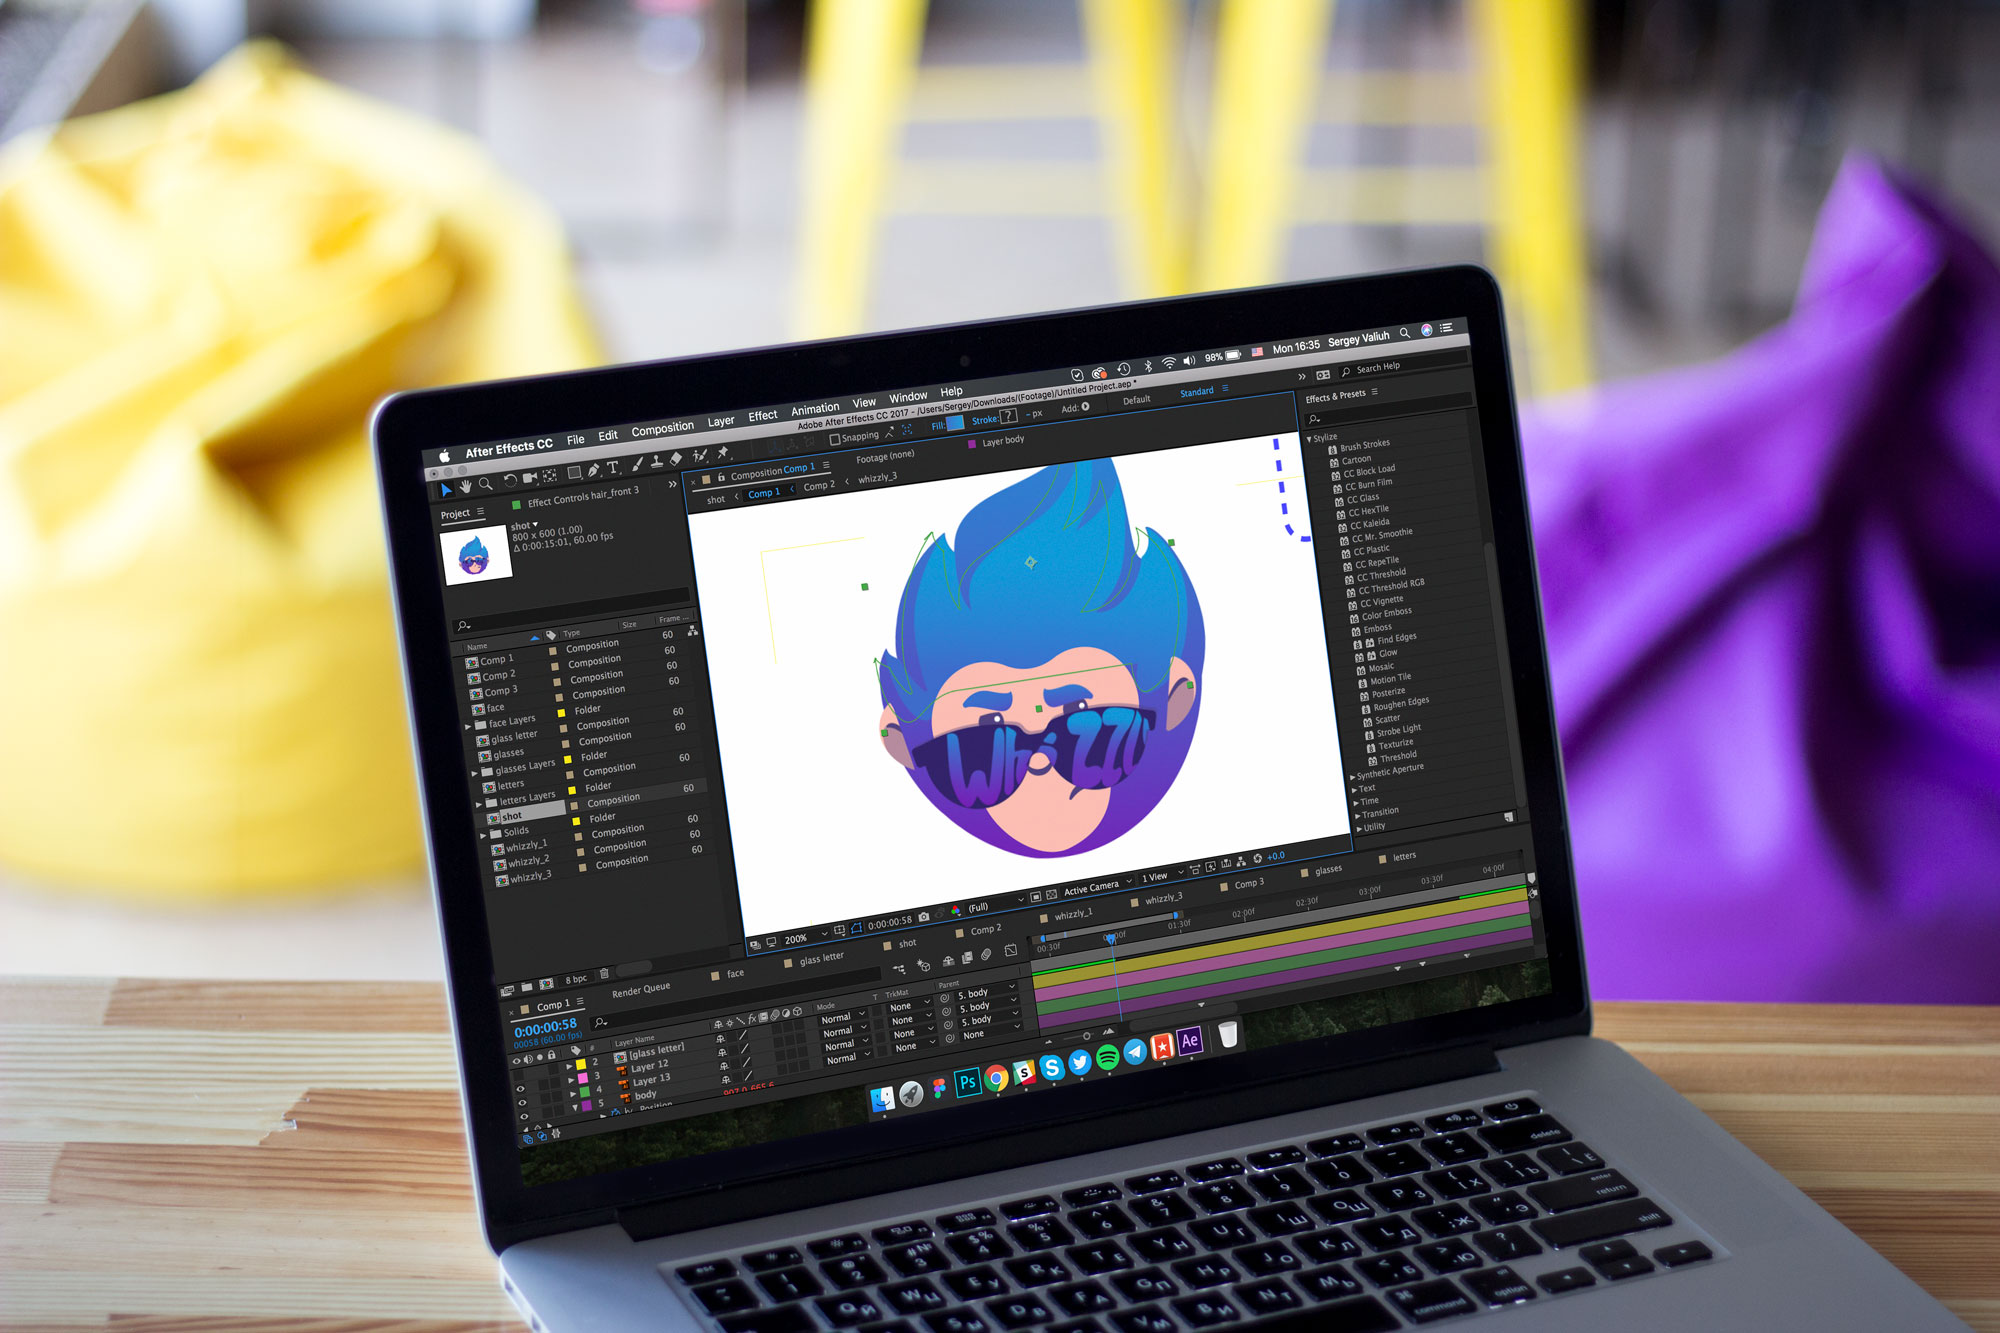 Animated Logos: Why, Where and How to Use